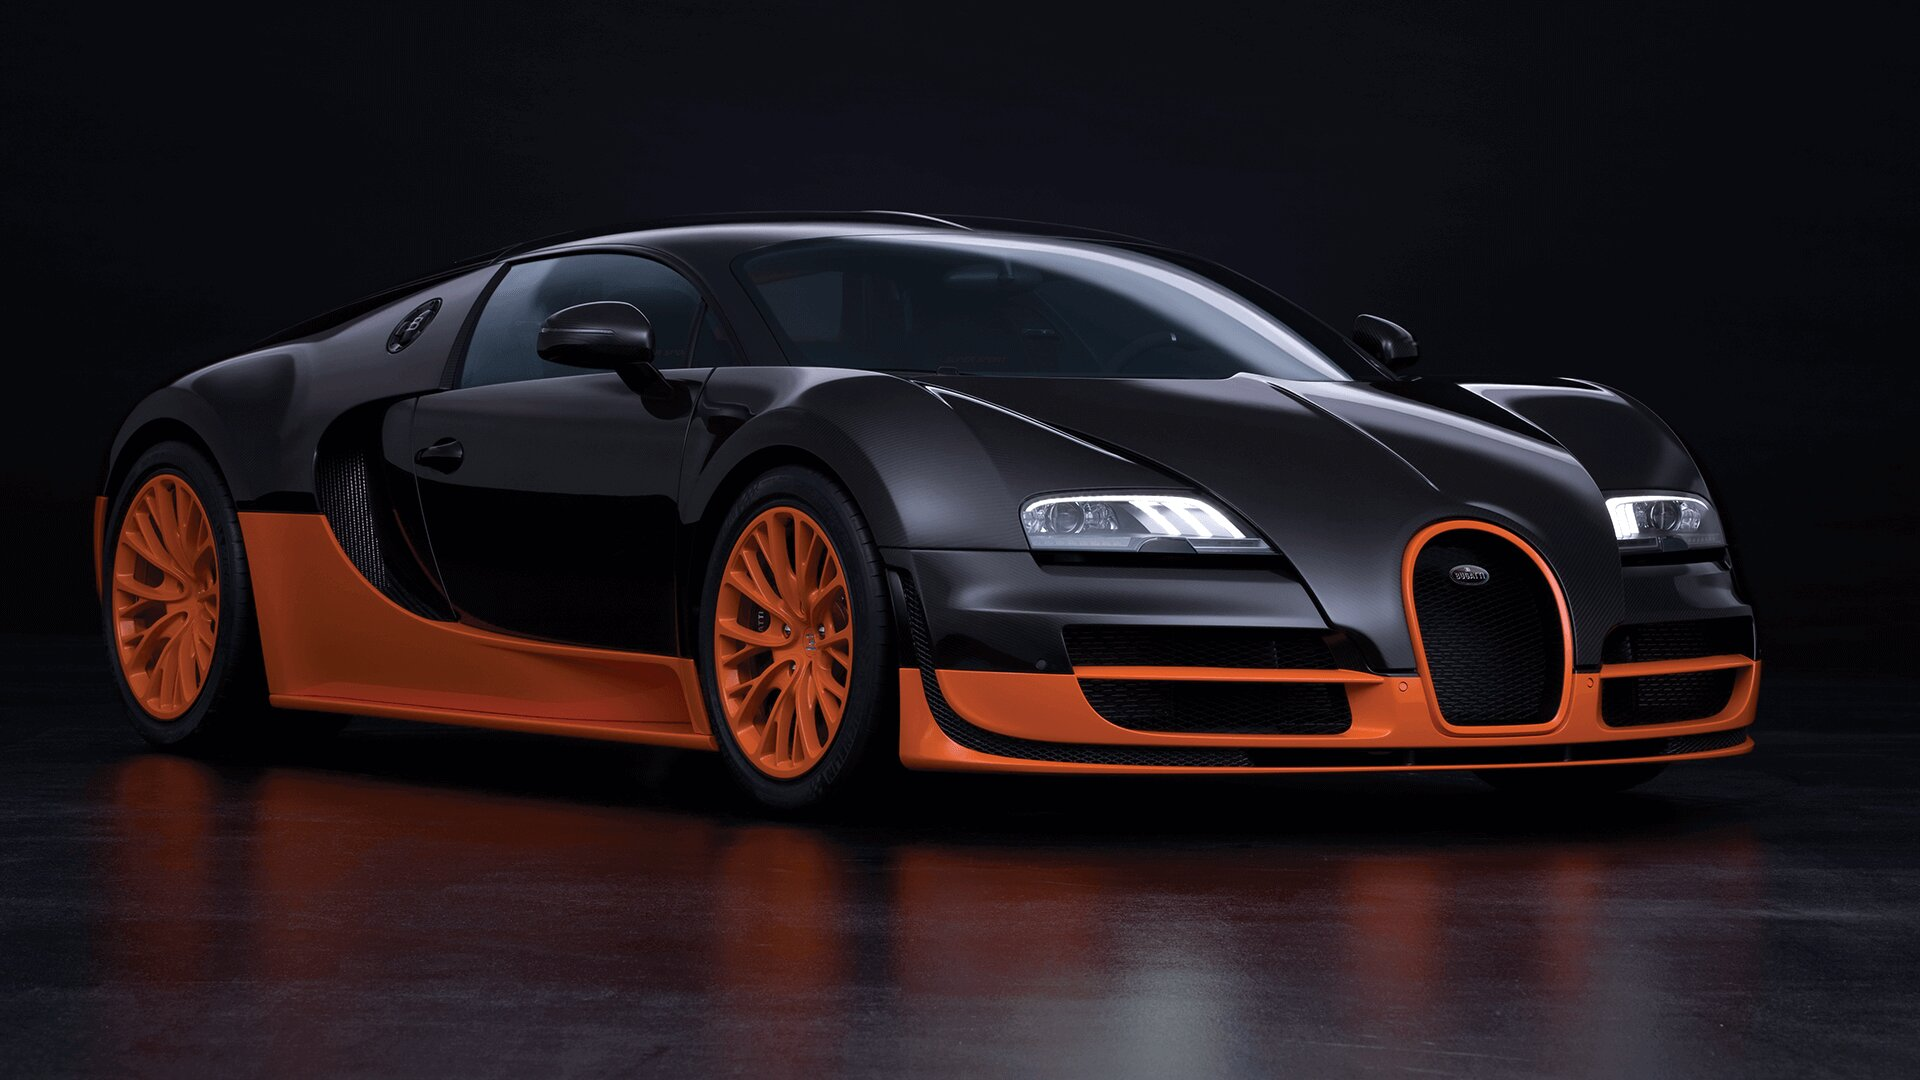 diamonds ghost motor rolls bespoke displays diamond with ultimate paint geneva elegance craftsmanship events at bugatti sir news royce car rr stardust shows more